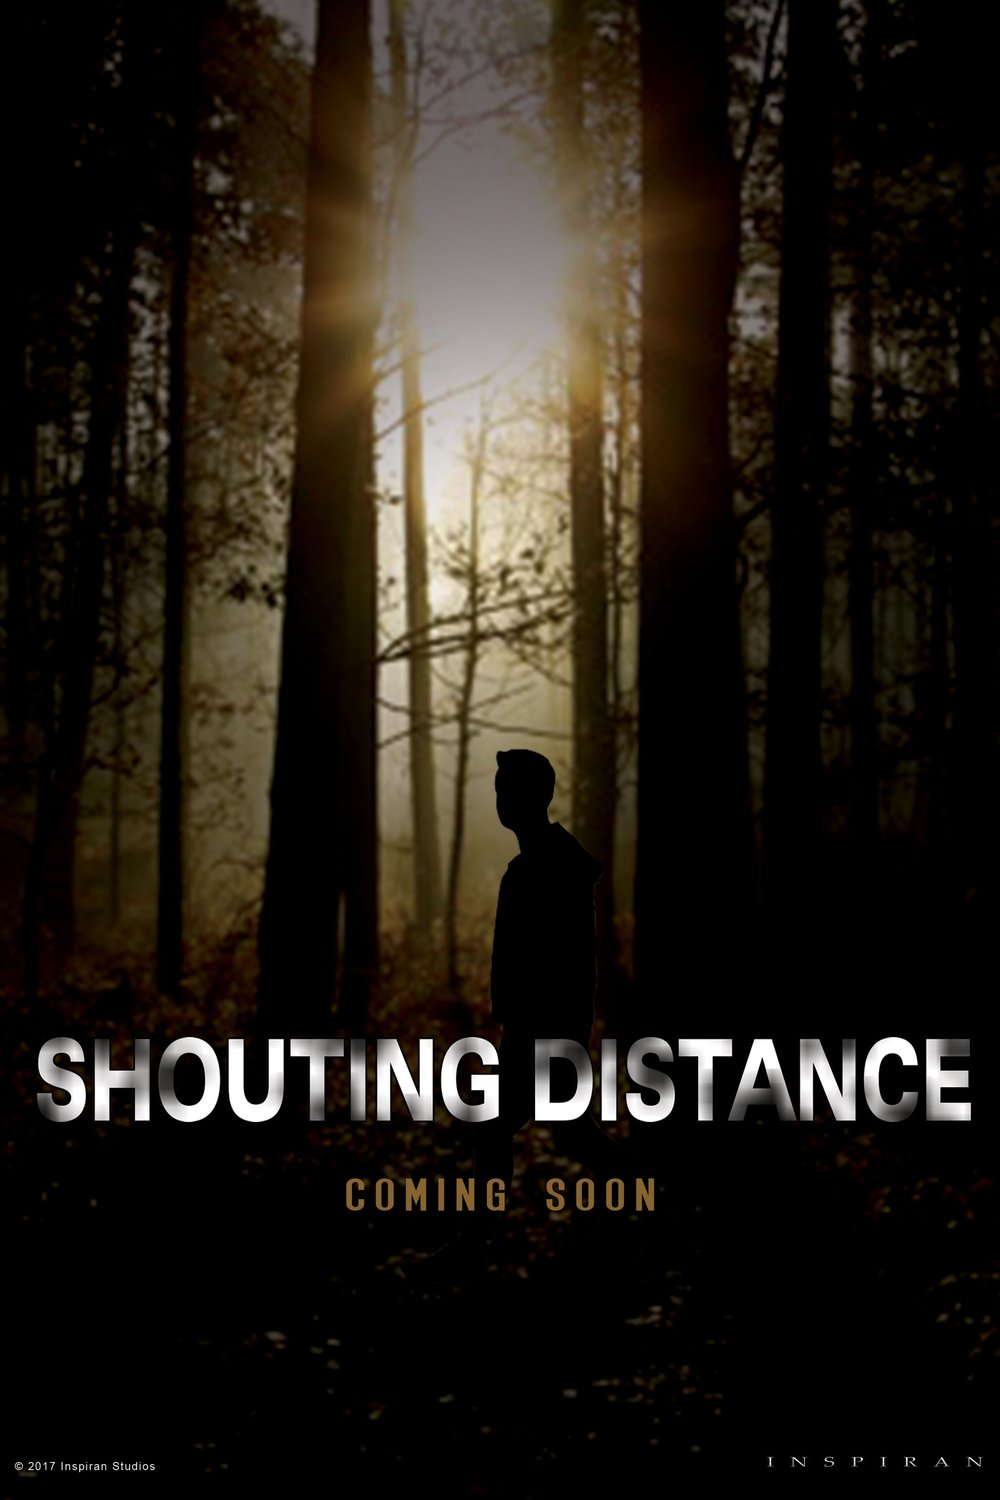 SHOUTING DISTANCE